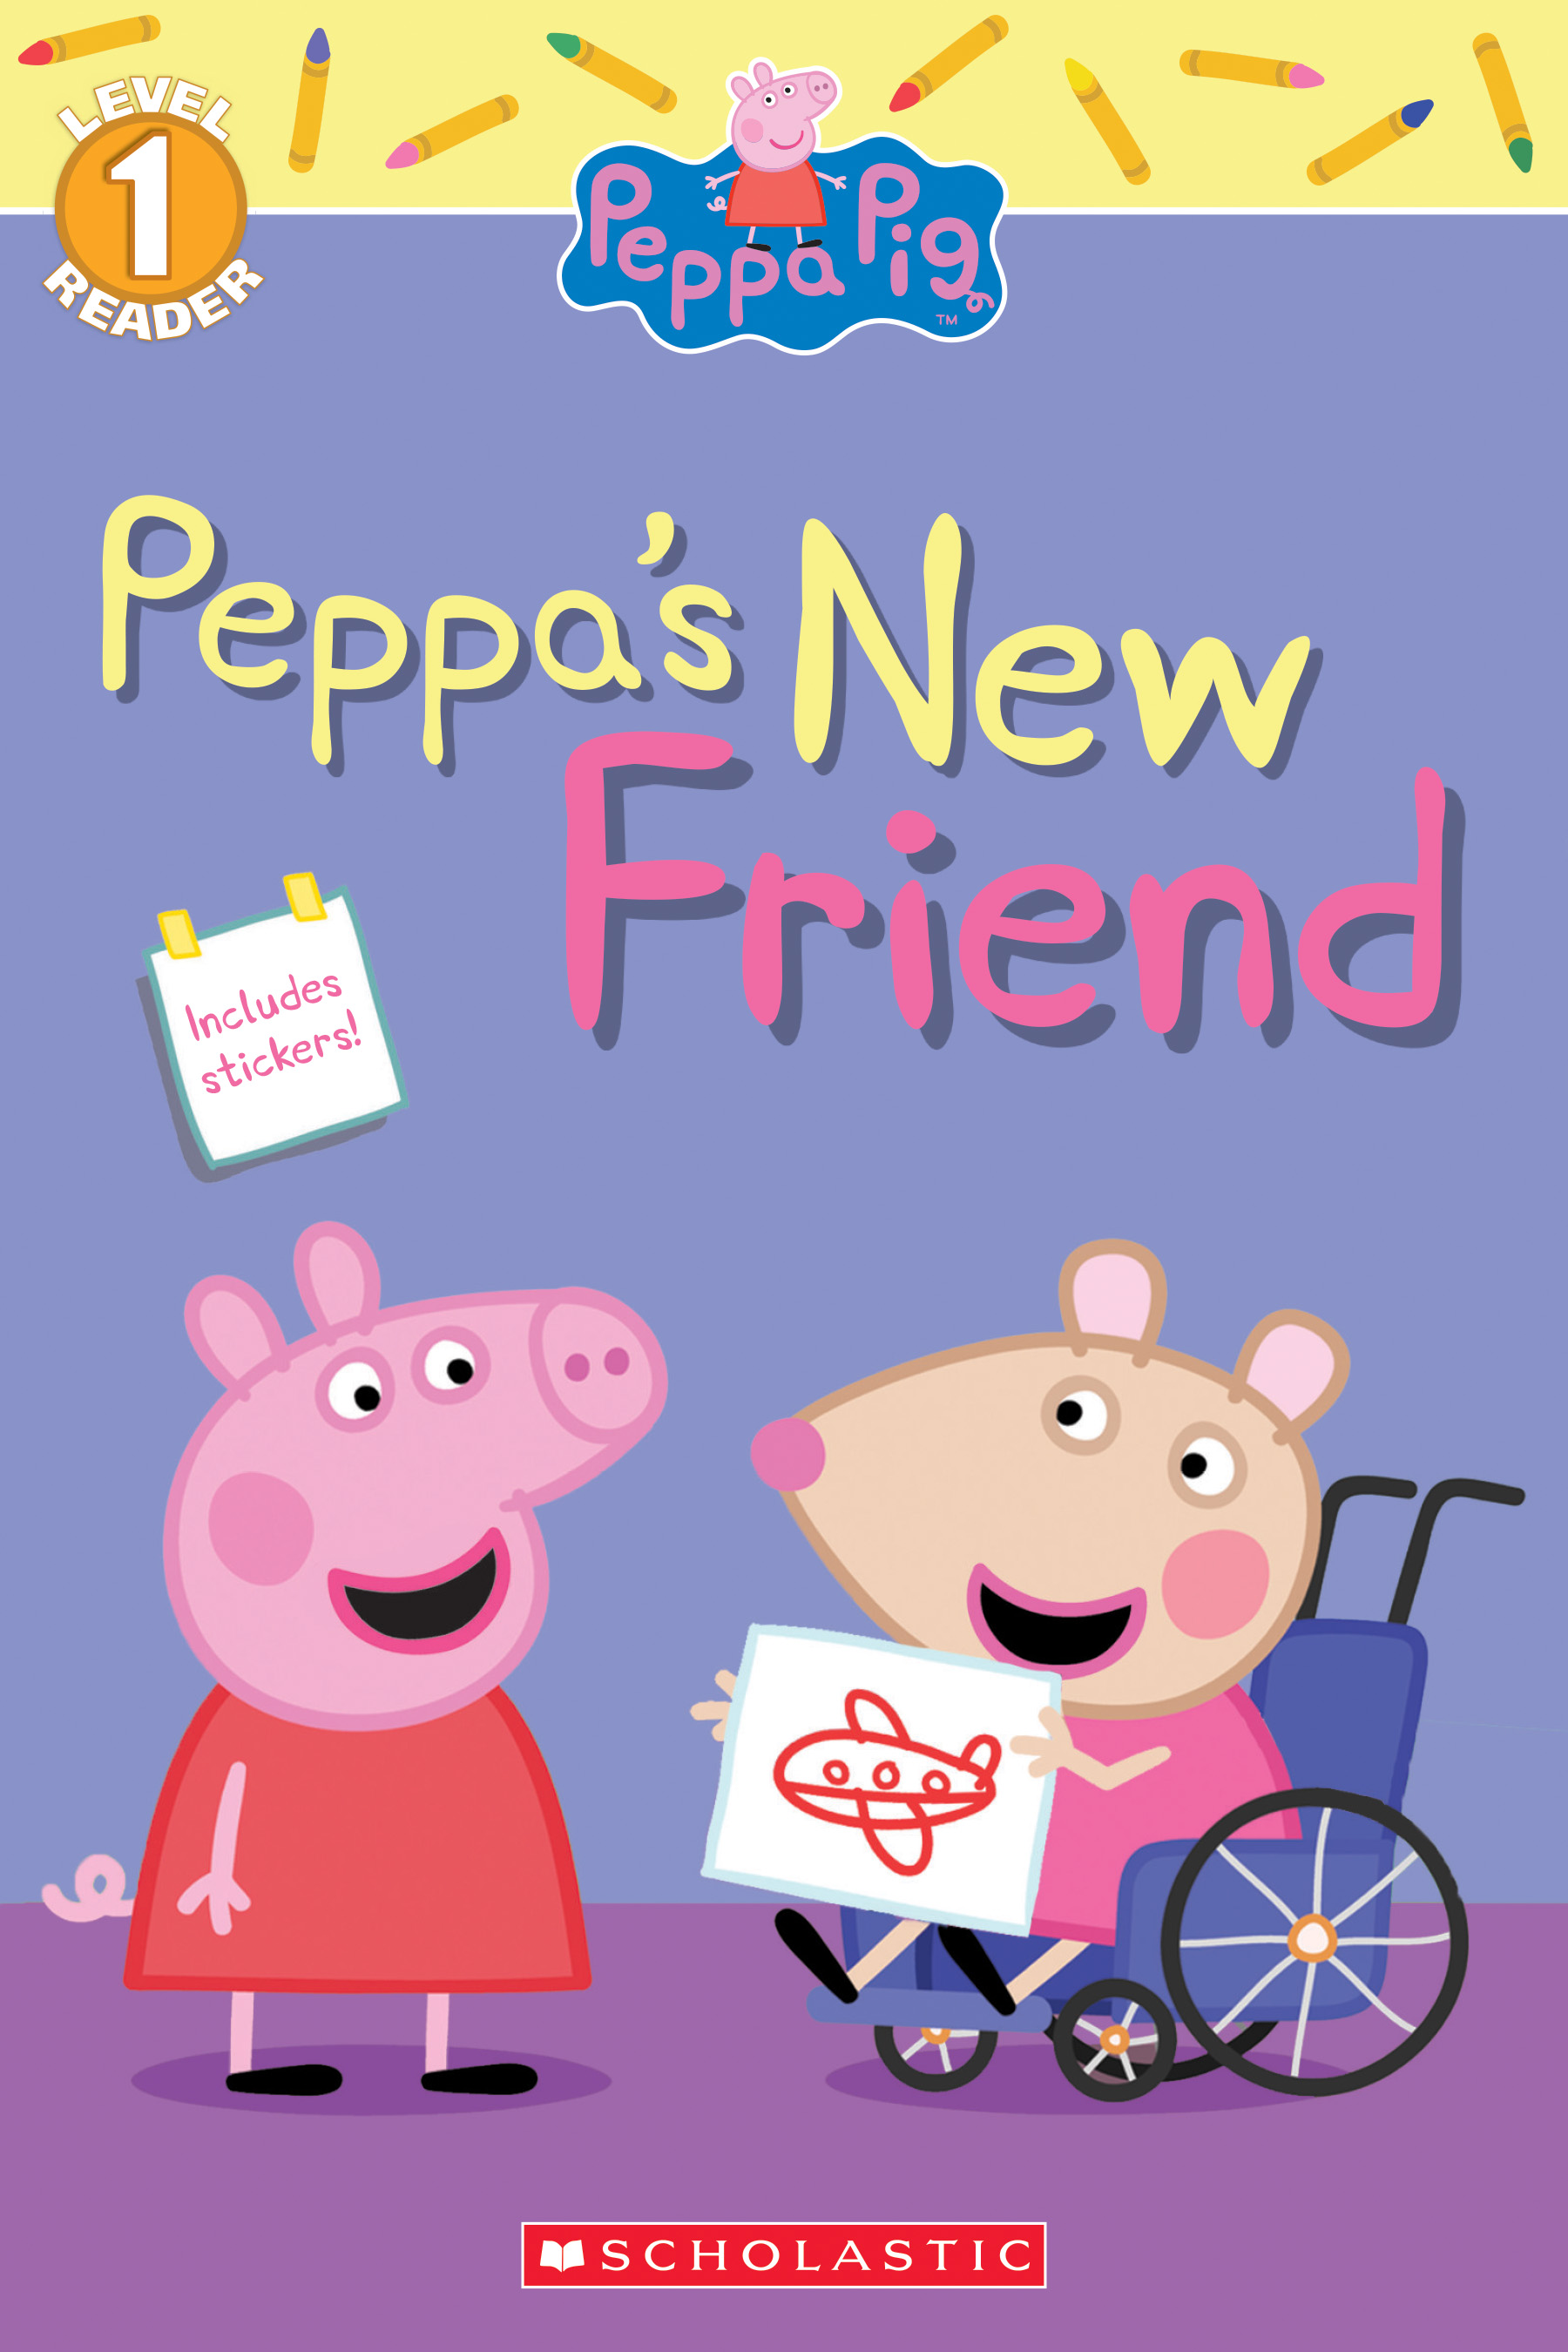 Peppa Pig and Friends Character Sticker Pad